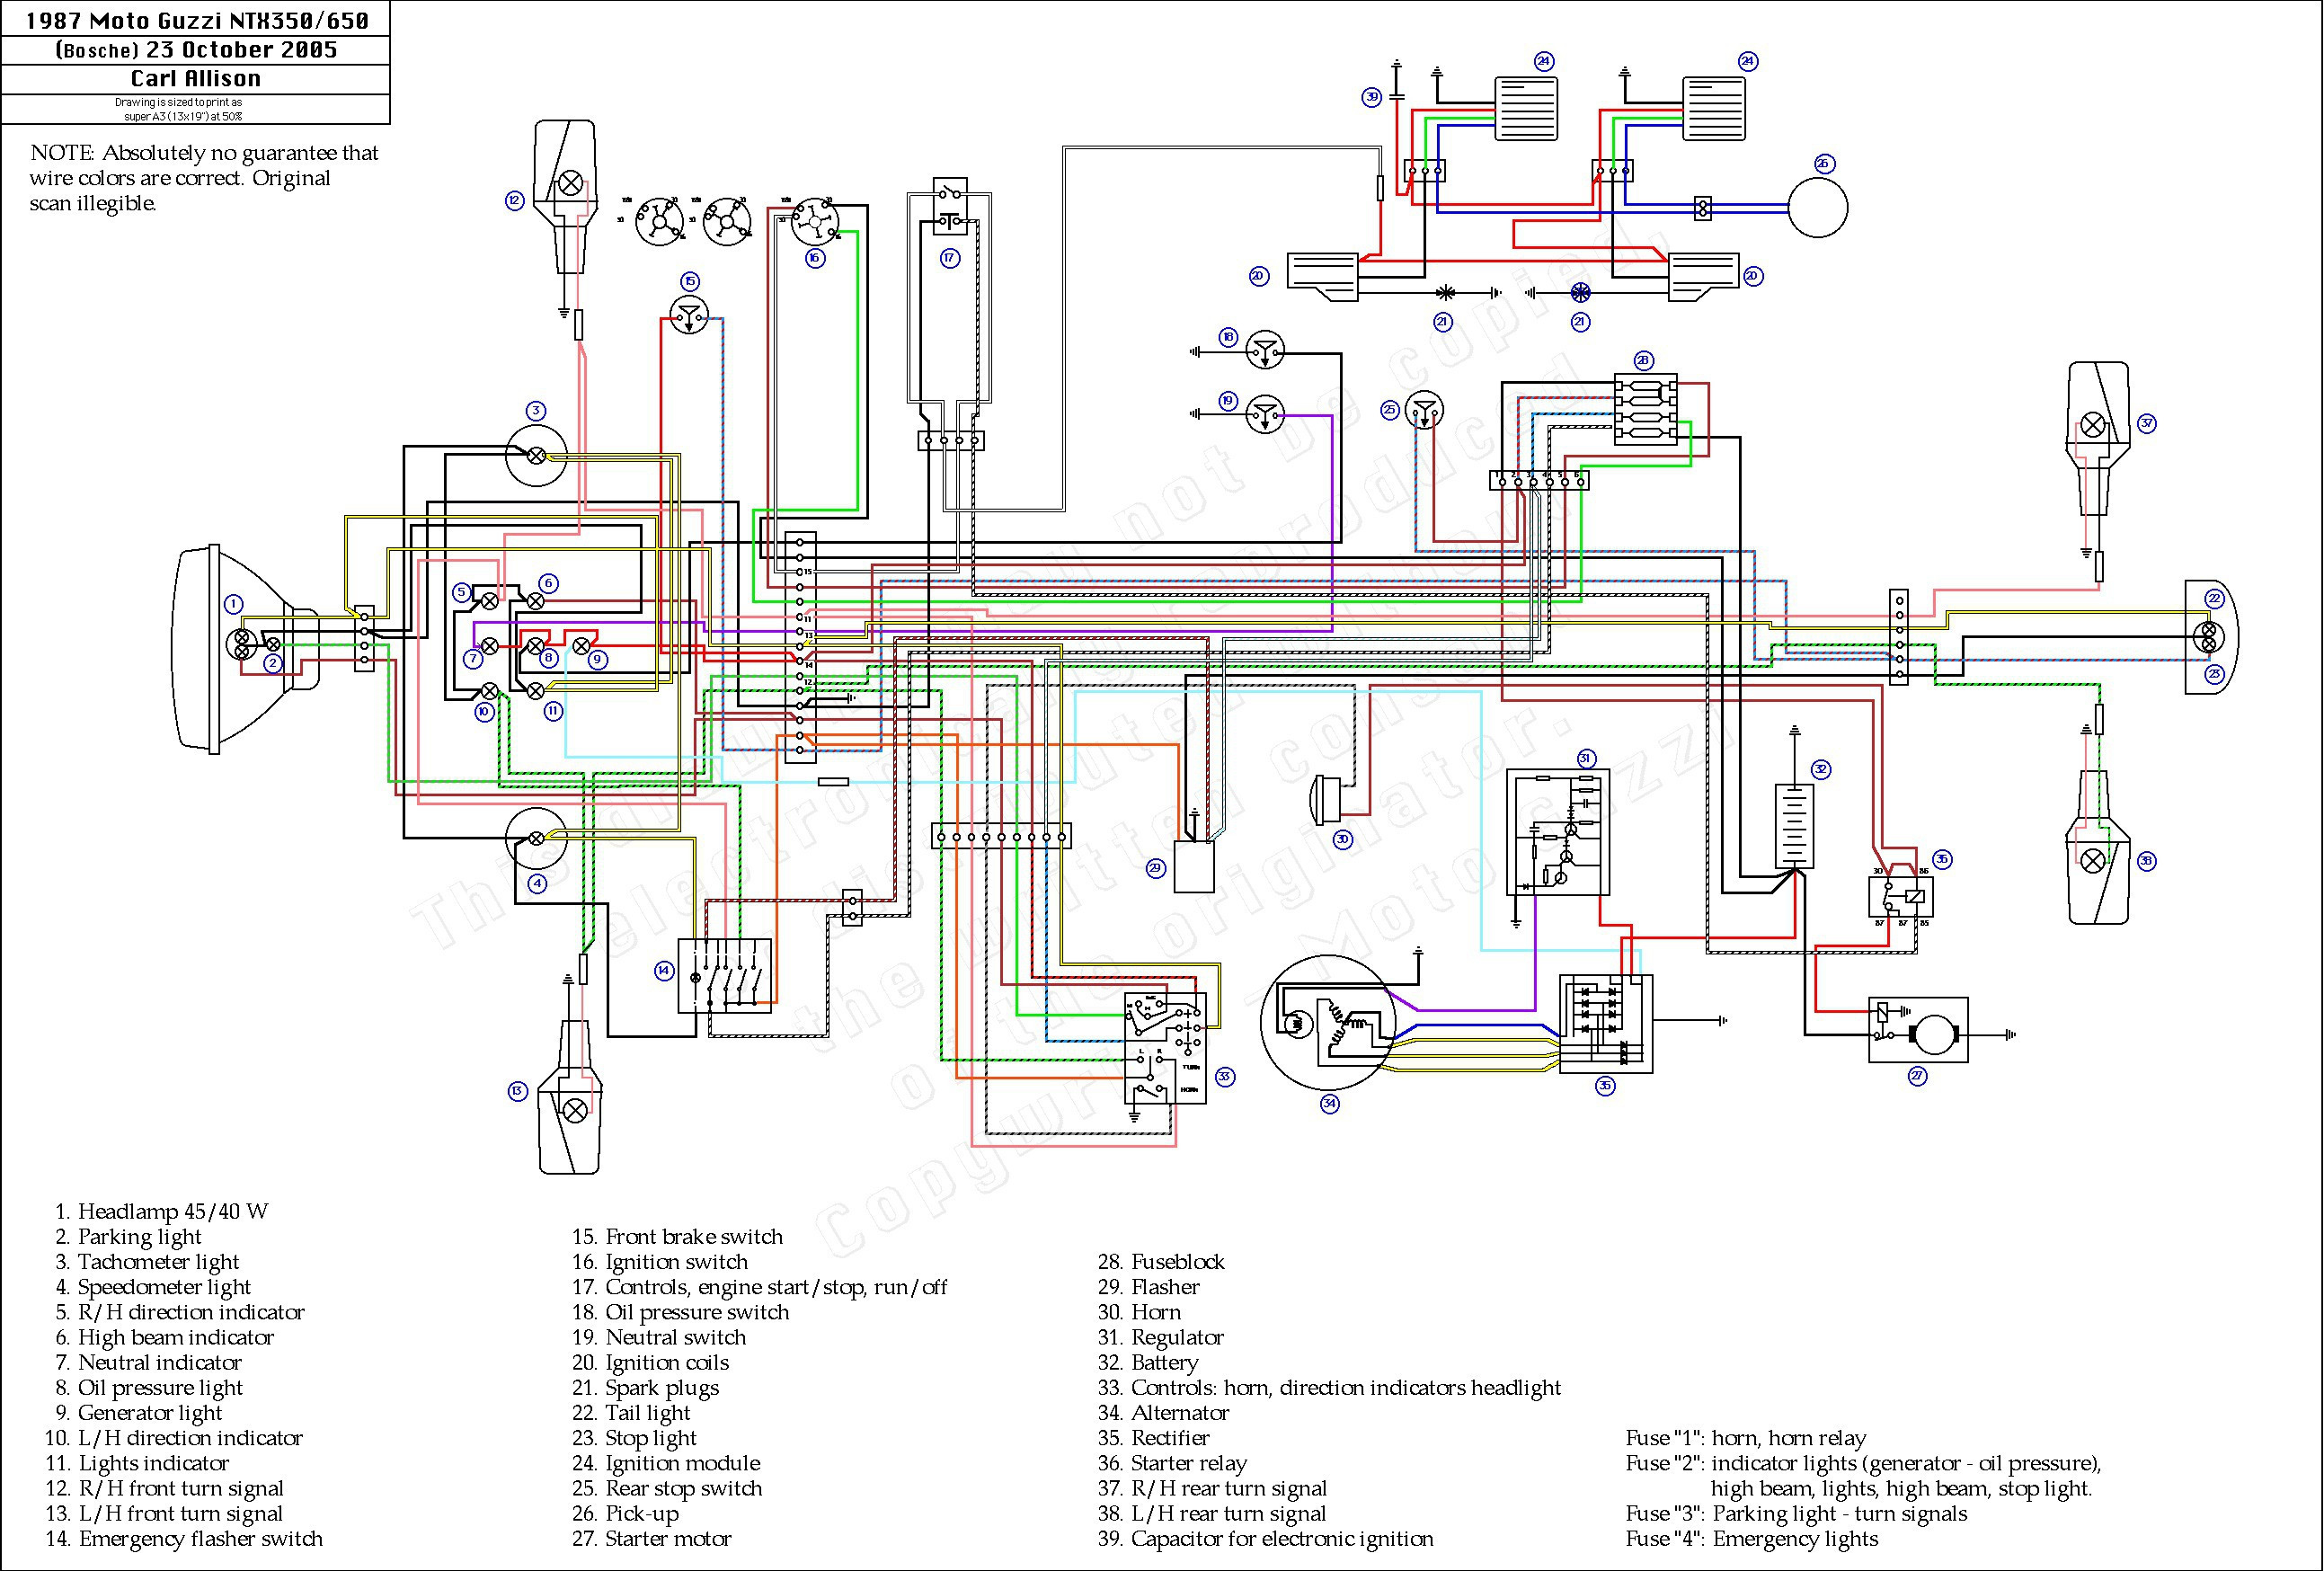 Diagram Wiring Diagram Gio 110 Atv Full Version Hd Quality 110 Atv Goldwiring18 Newsetvlucera It